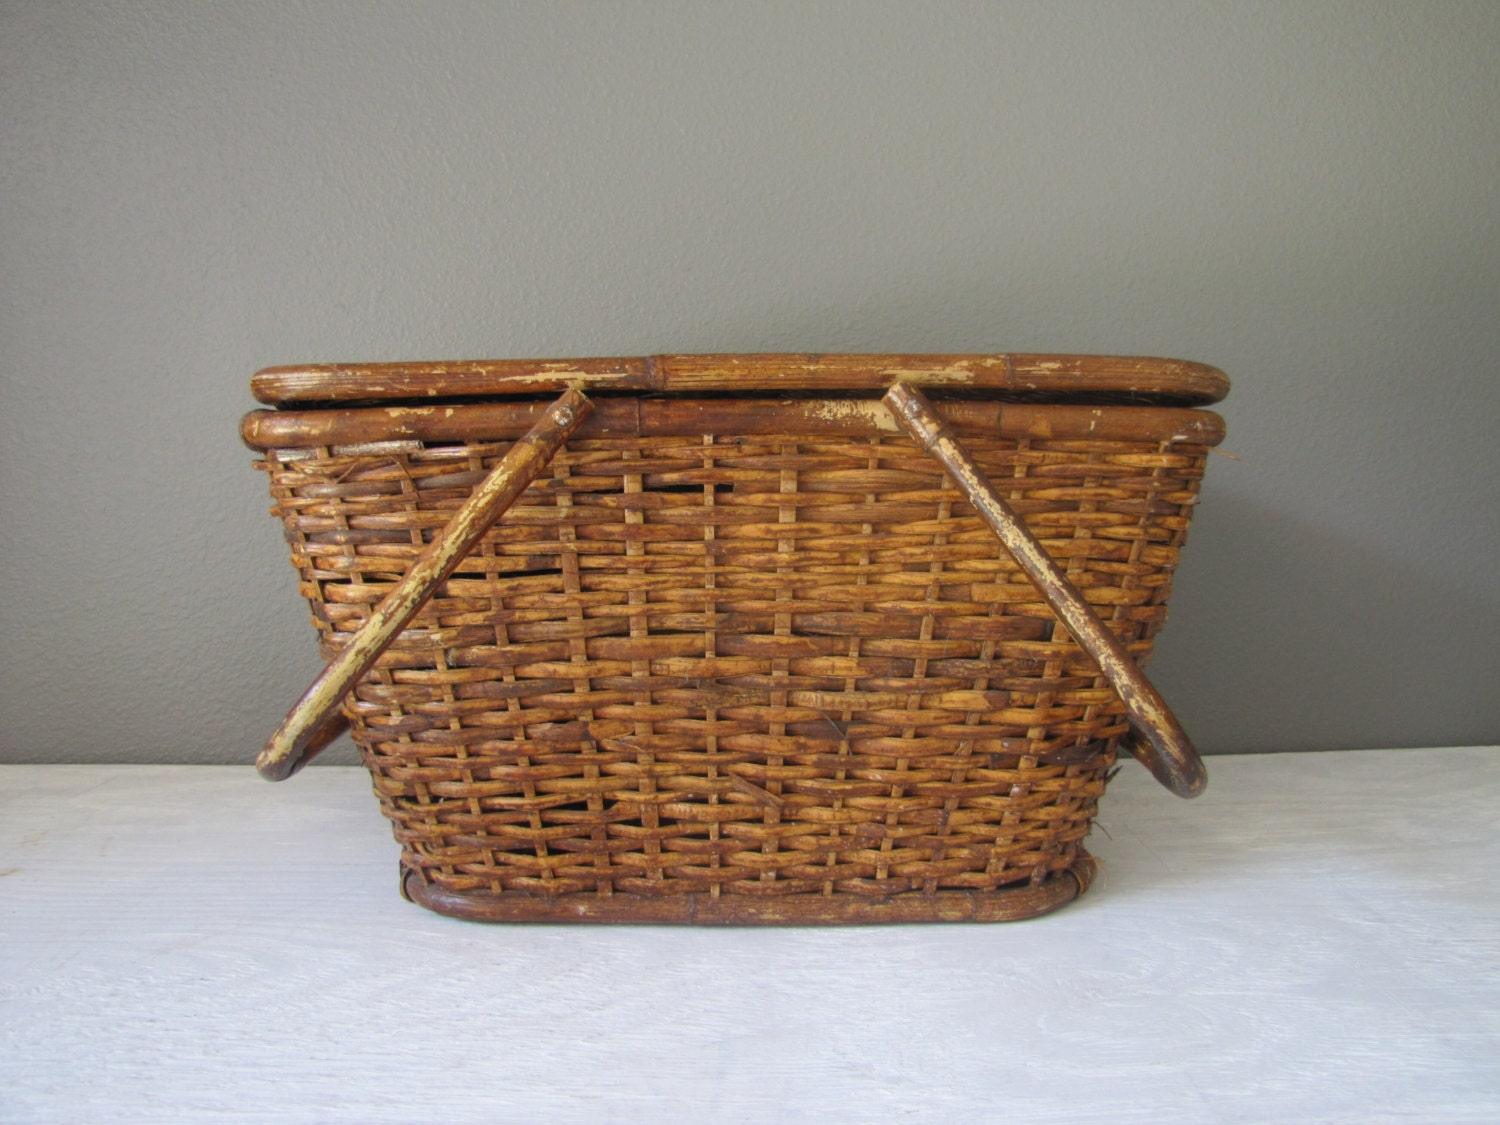 vintage picnic basket wicker basket bamboo handle picnic. Black Bedroom Furniture Sets. Home Design Ideas